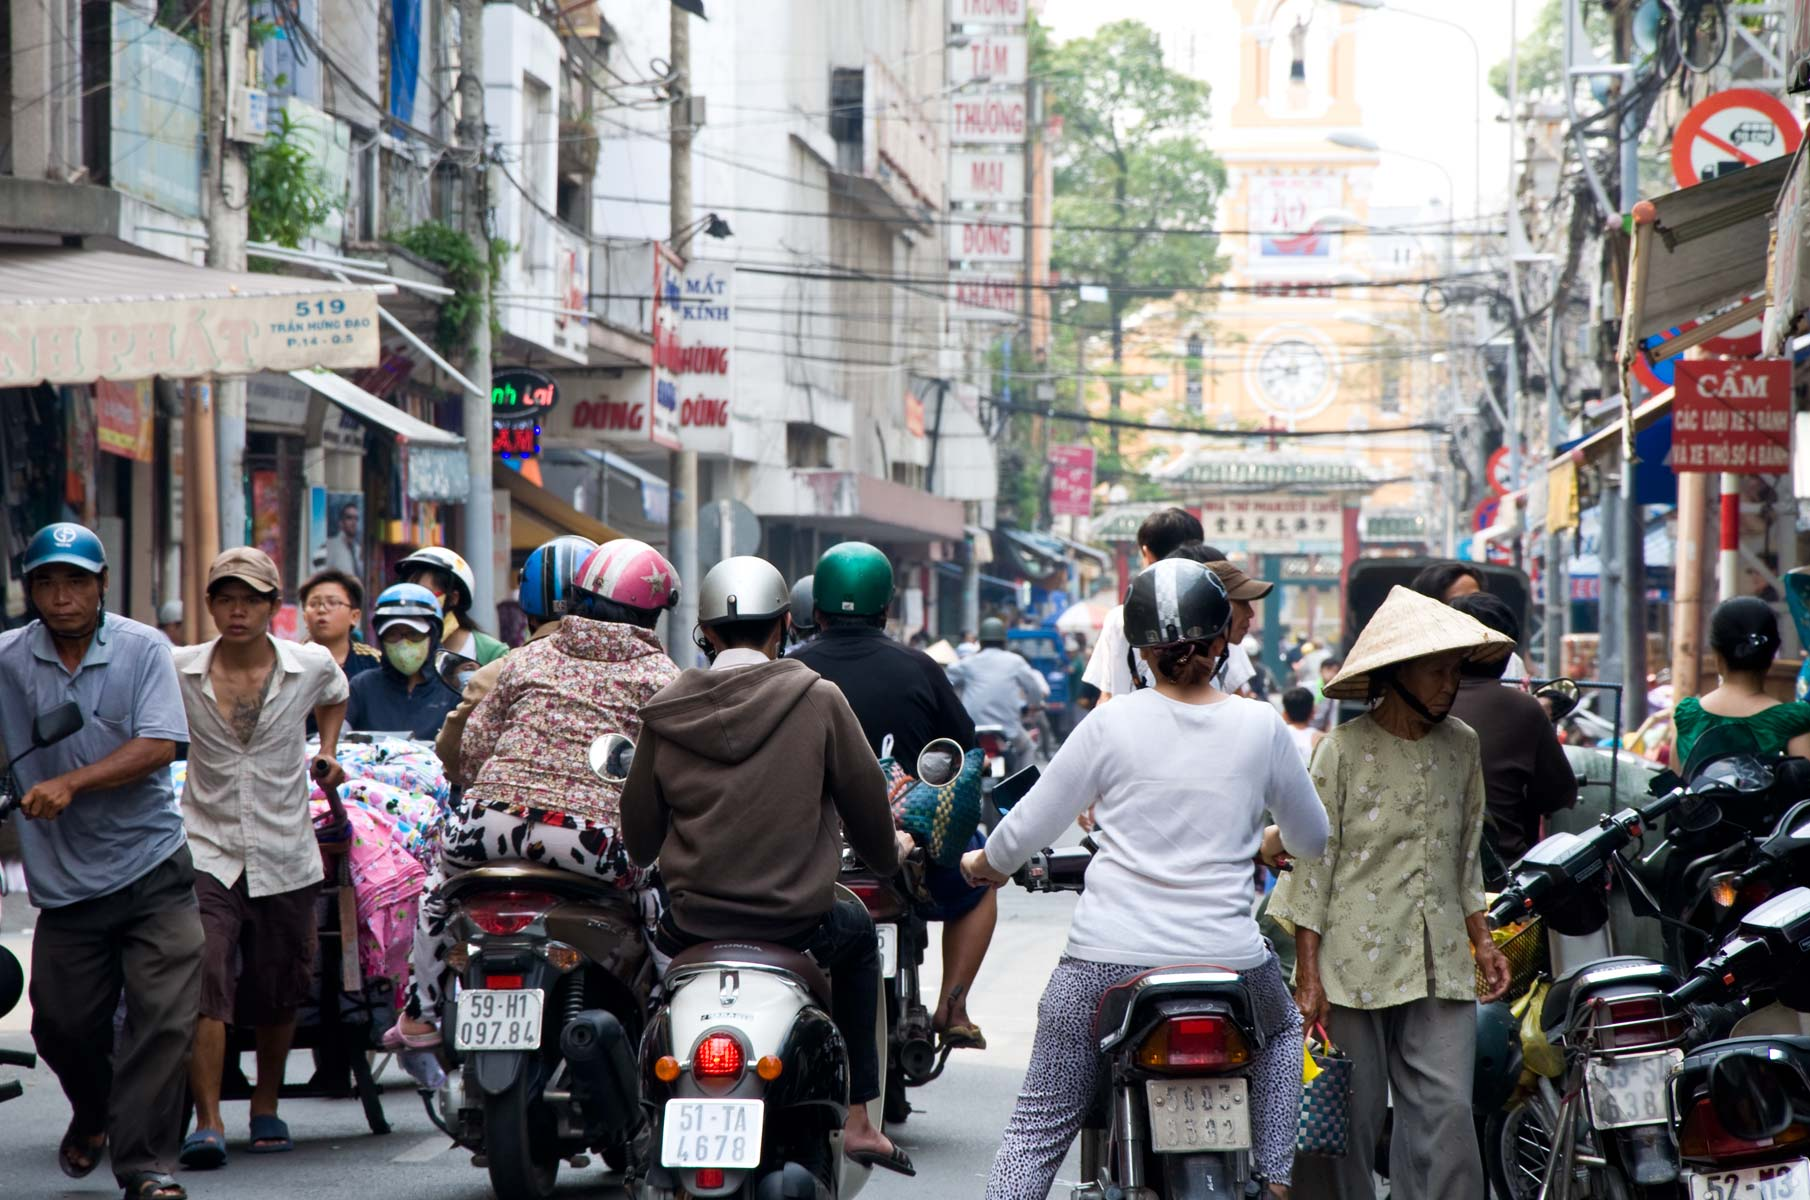 Rollern/Mopeds in Saigon (Ho-Chi-Minh Stadt), Vietnam